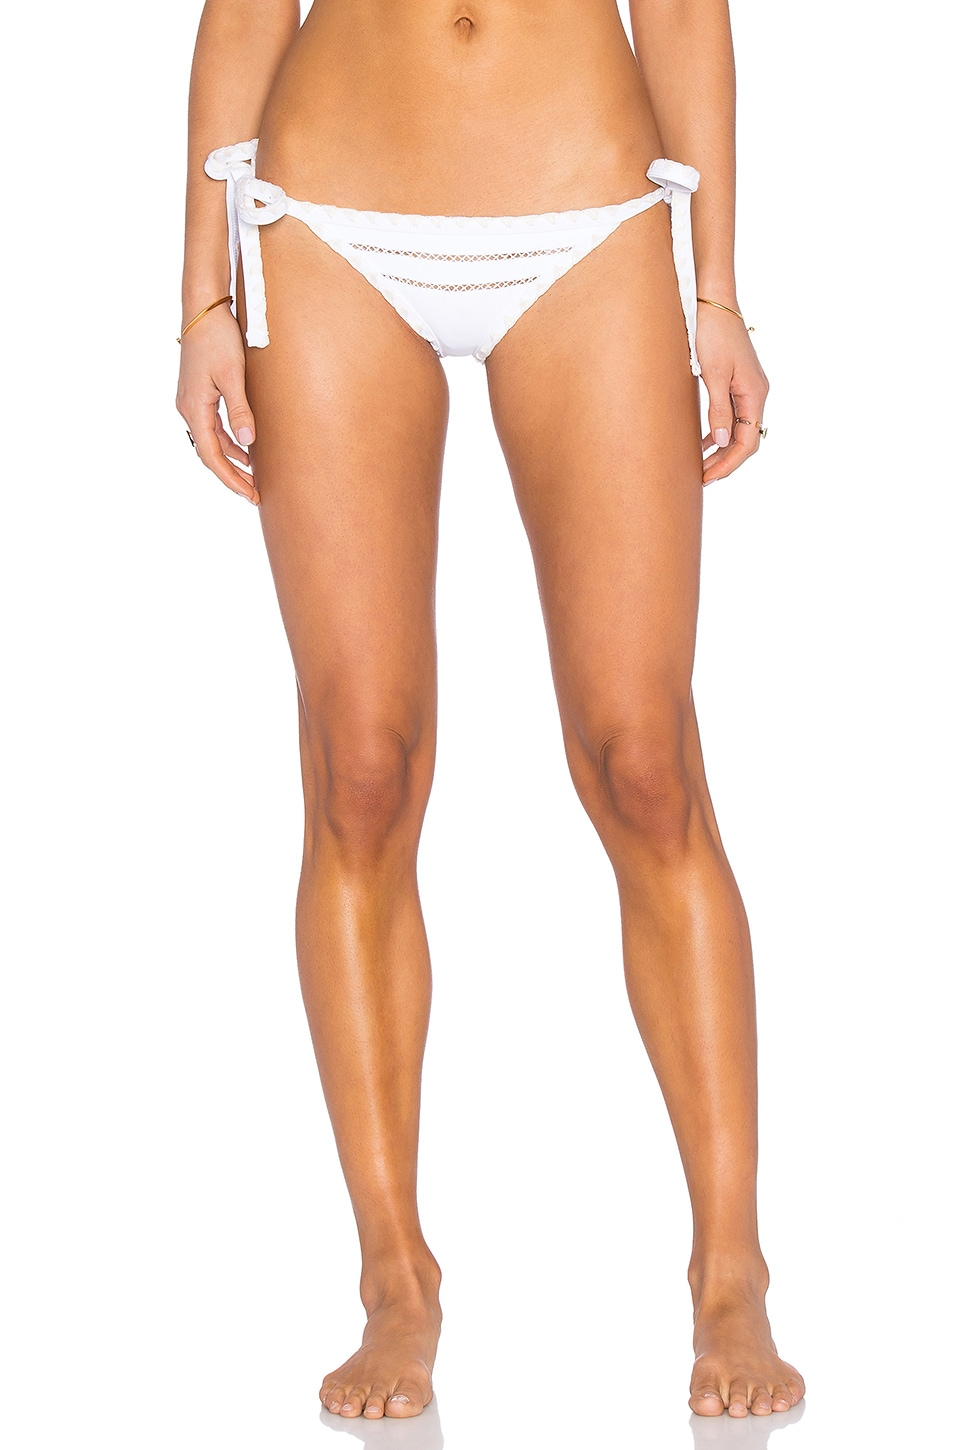 SAME Swim The Tease Tie Side Bottom in Blanc & Naturel